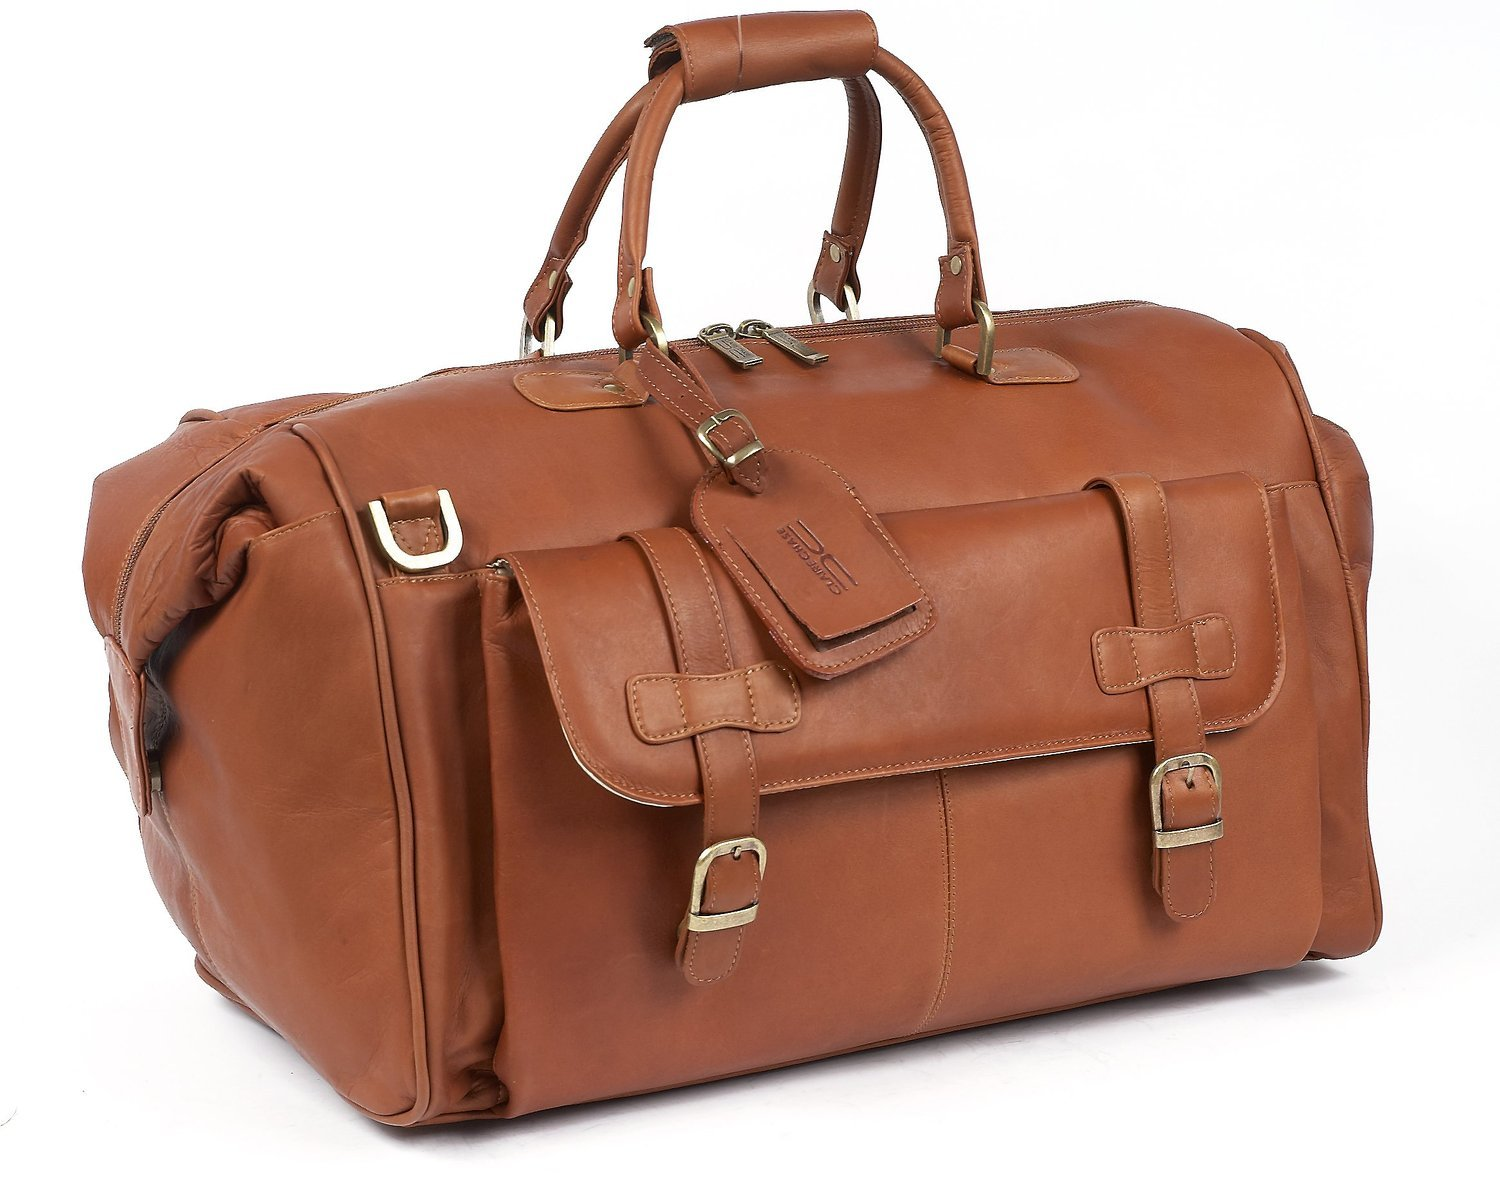 Claire Chase Millionaire's Leather Duffel Bag in Saddle